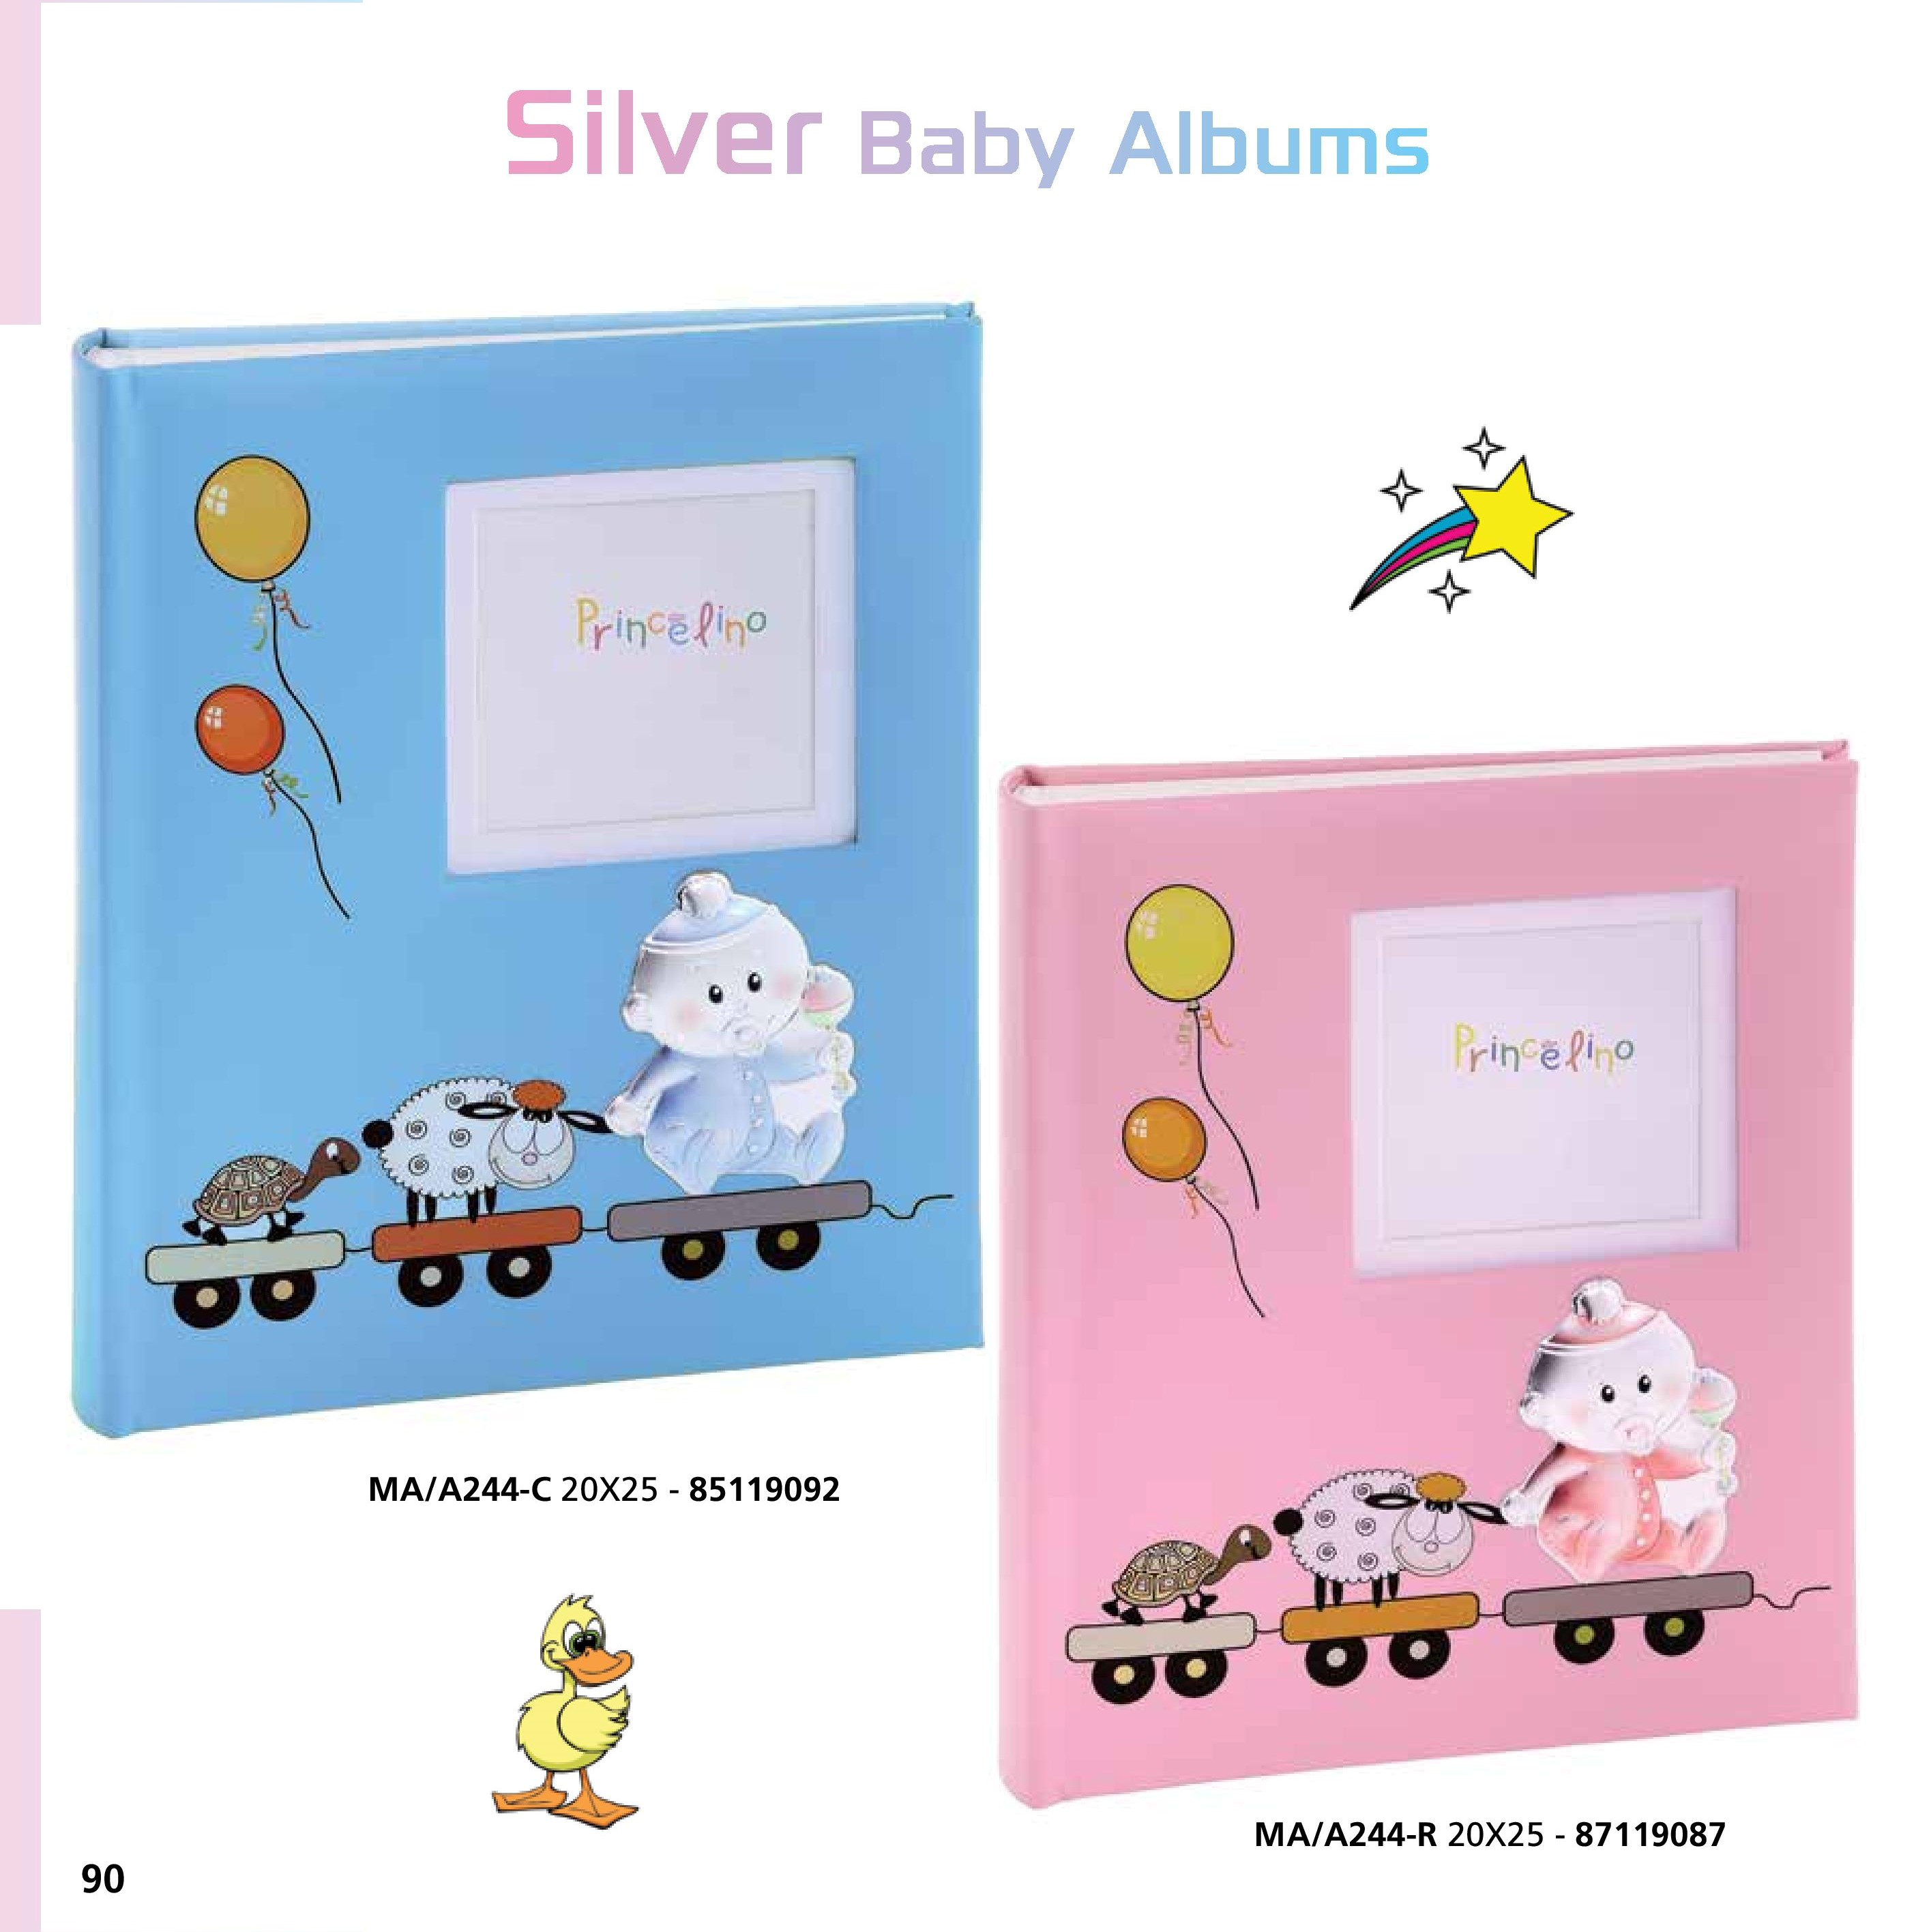 https://gifts4you.gr/wp-content/uploads/2018/11/Silver-Baby-albums-page-007.jpg